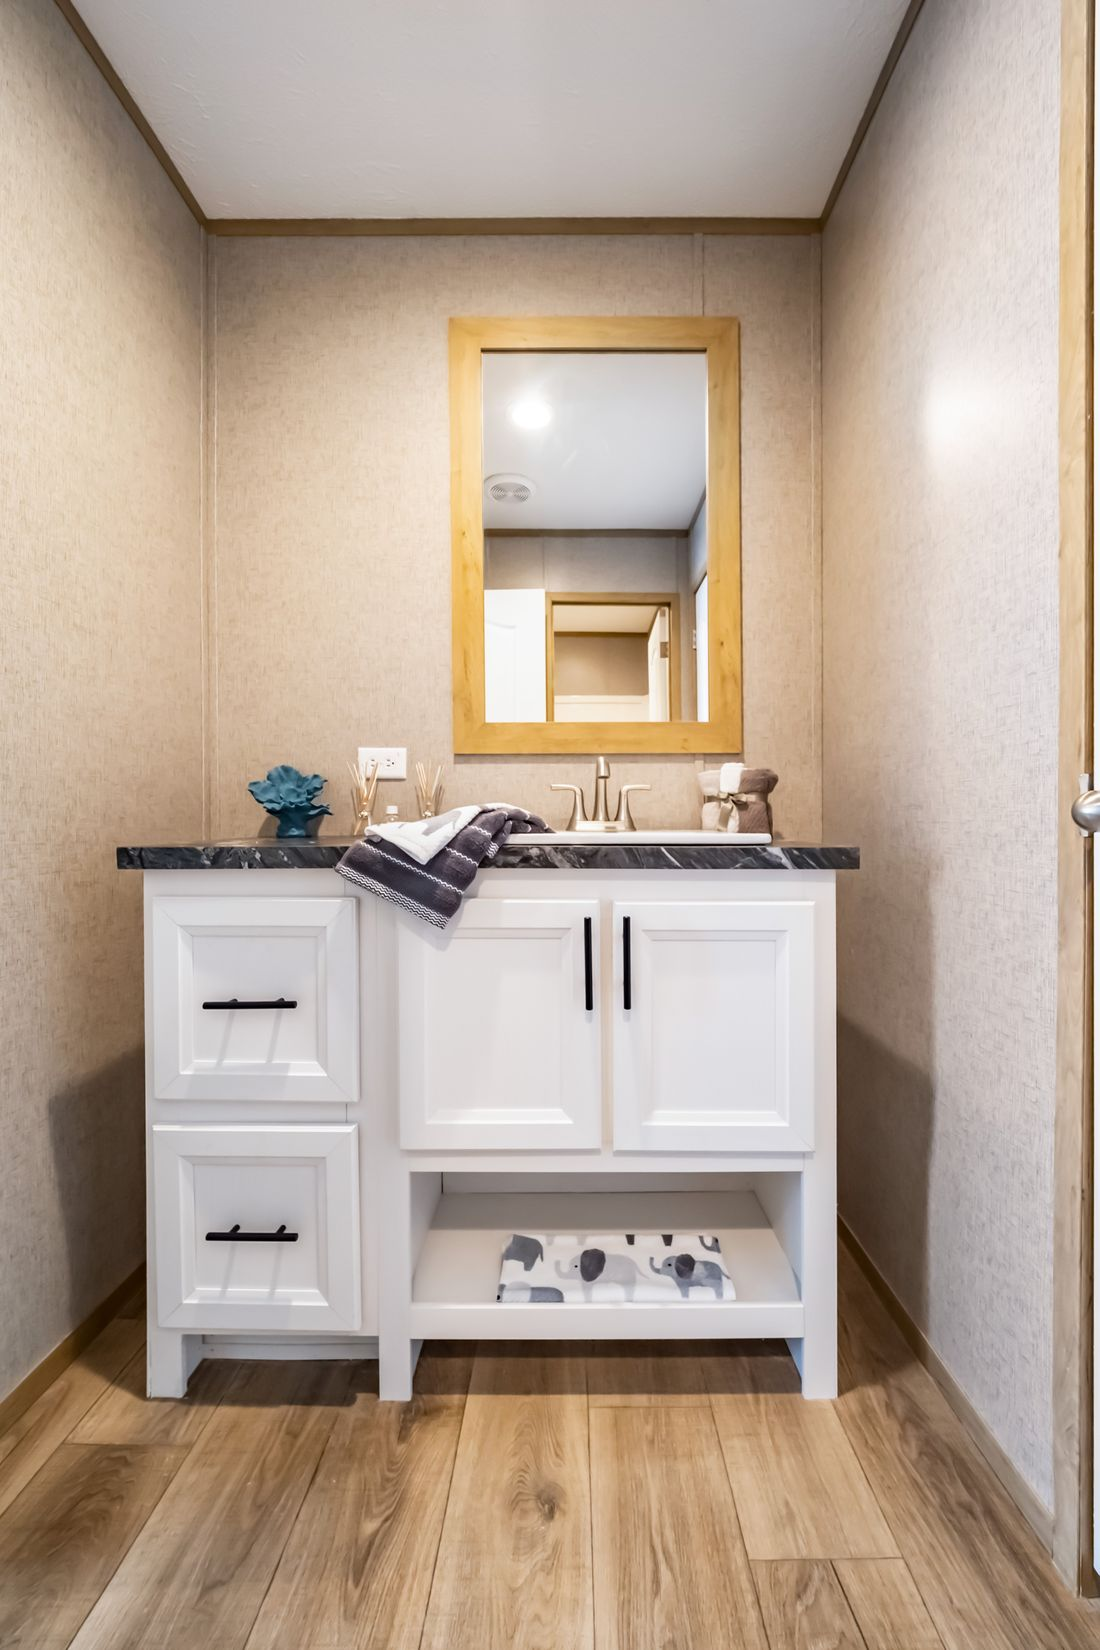 The SUMMIT Guest Jack & Jill Bathroom. This Manufactured Mobile Home features 4 bedrooms and 3 baths.